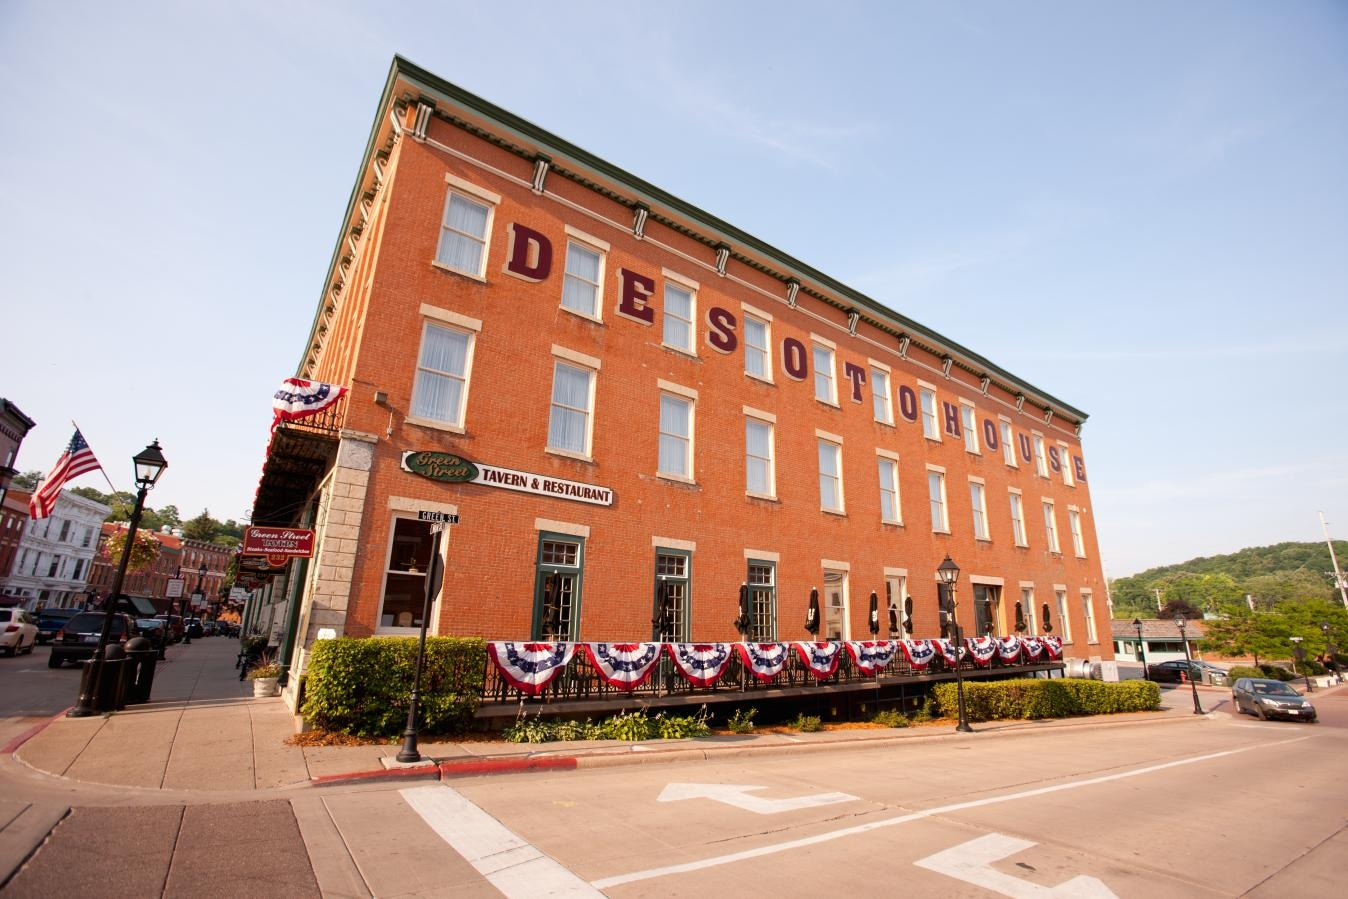 The DeSoto House Hotel located in the heart of downtown Galena